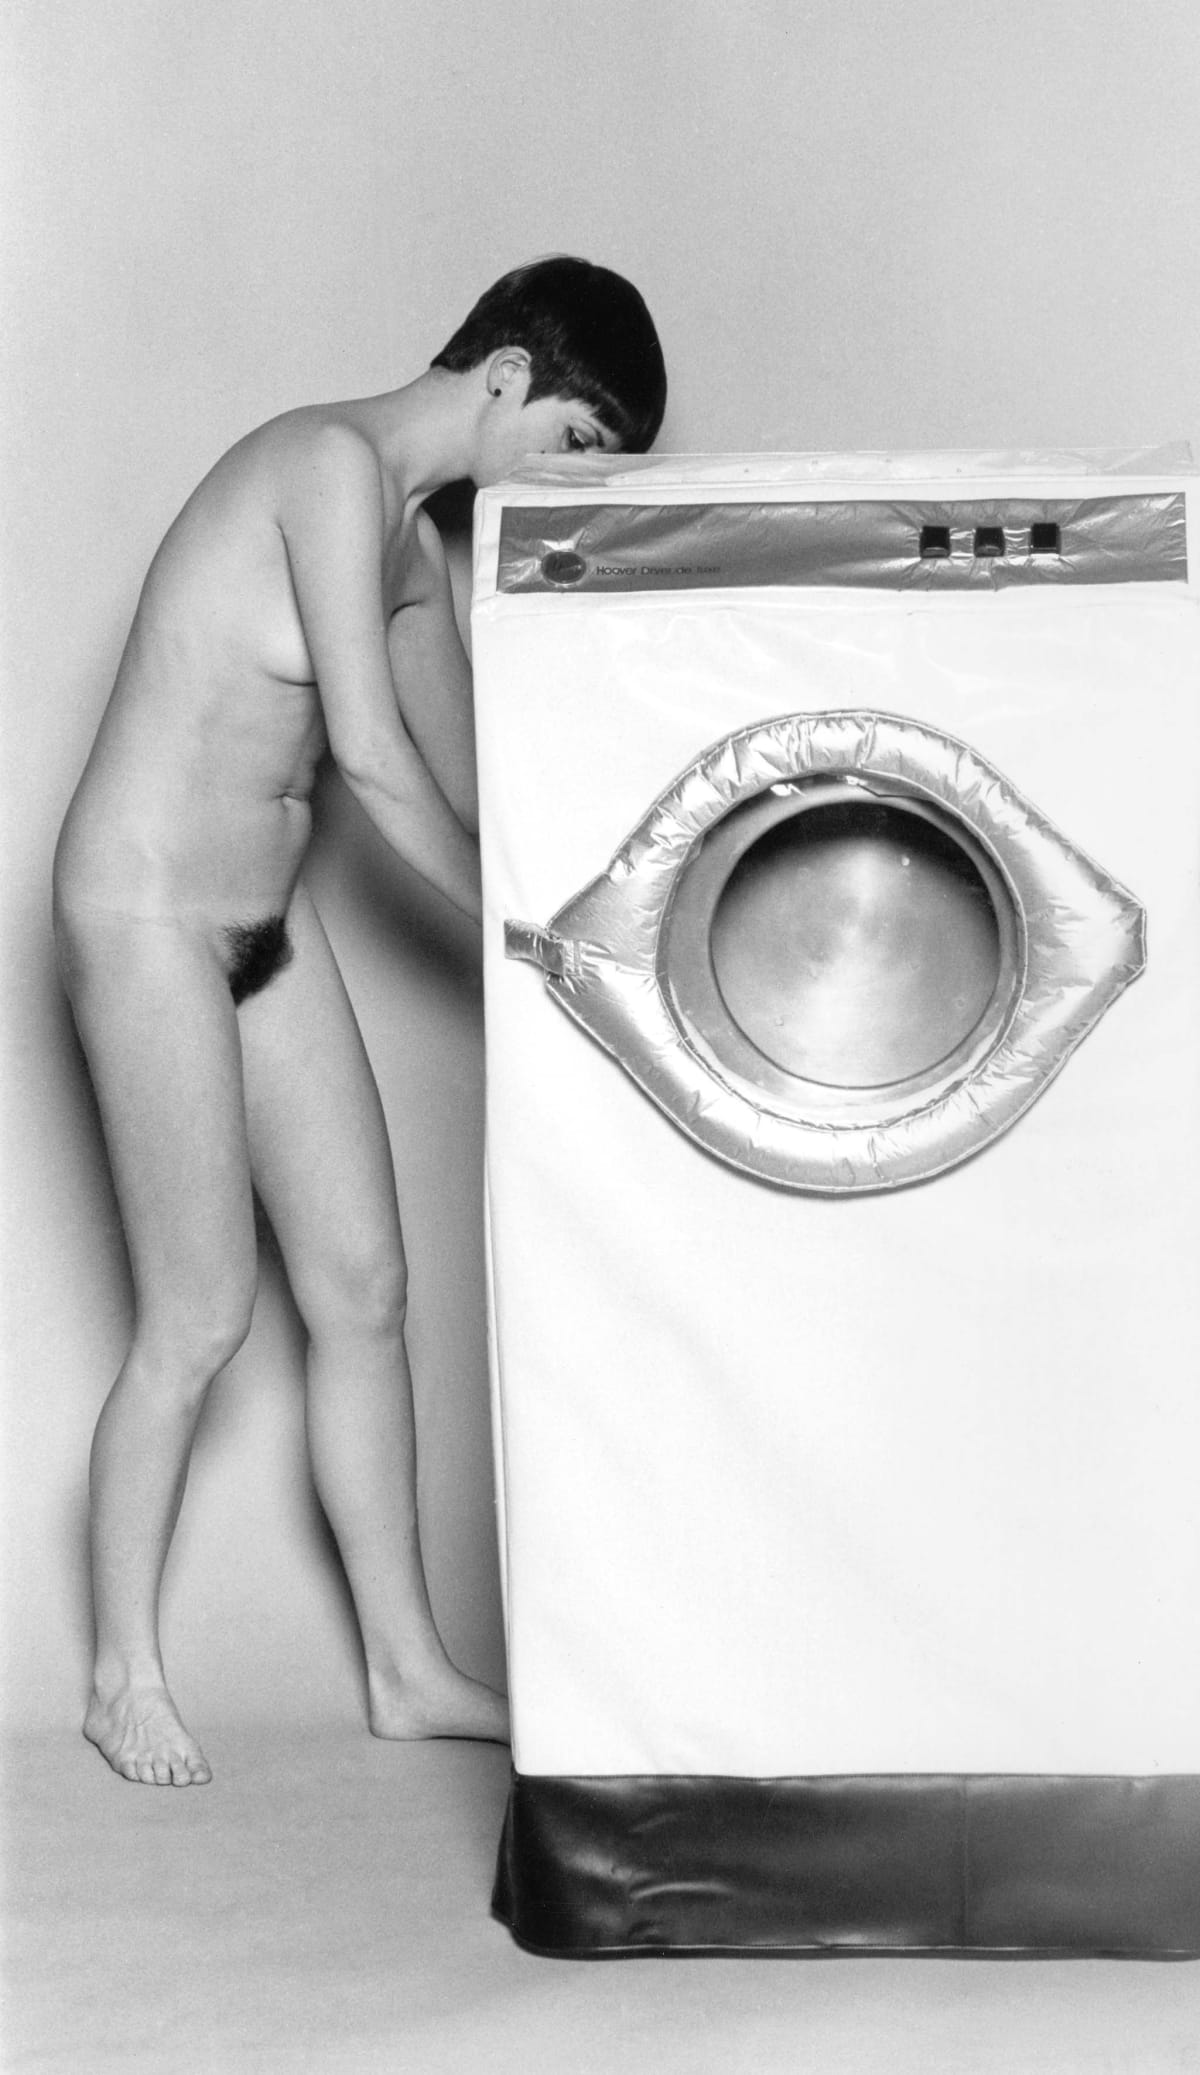 Helen CHADWICK In the Kitchen (Washing Machine), 1977 Archival Pigment Print (printed 2018) Image size: 30 x 17.3 cm Sheet size: 40 x 30 cm Edition 2 of 10 + 2 APs